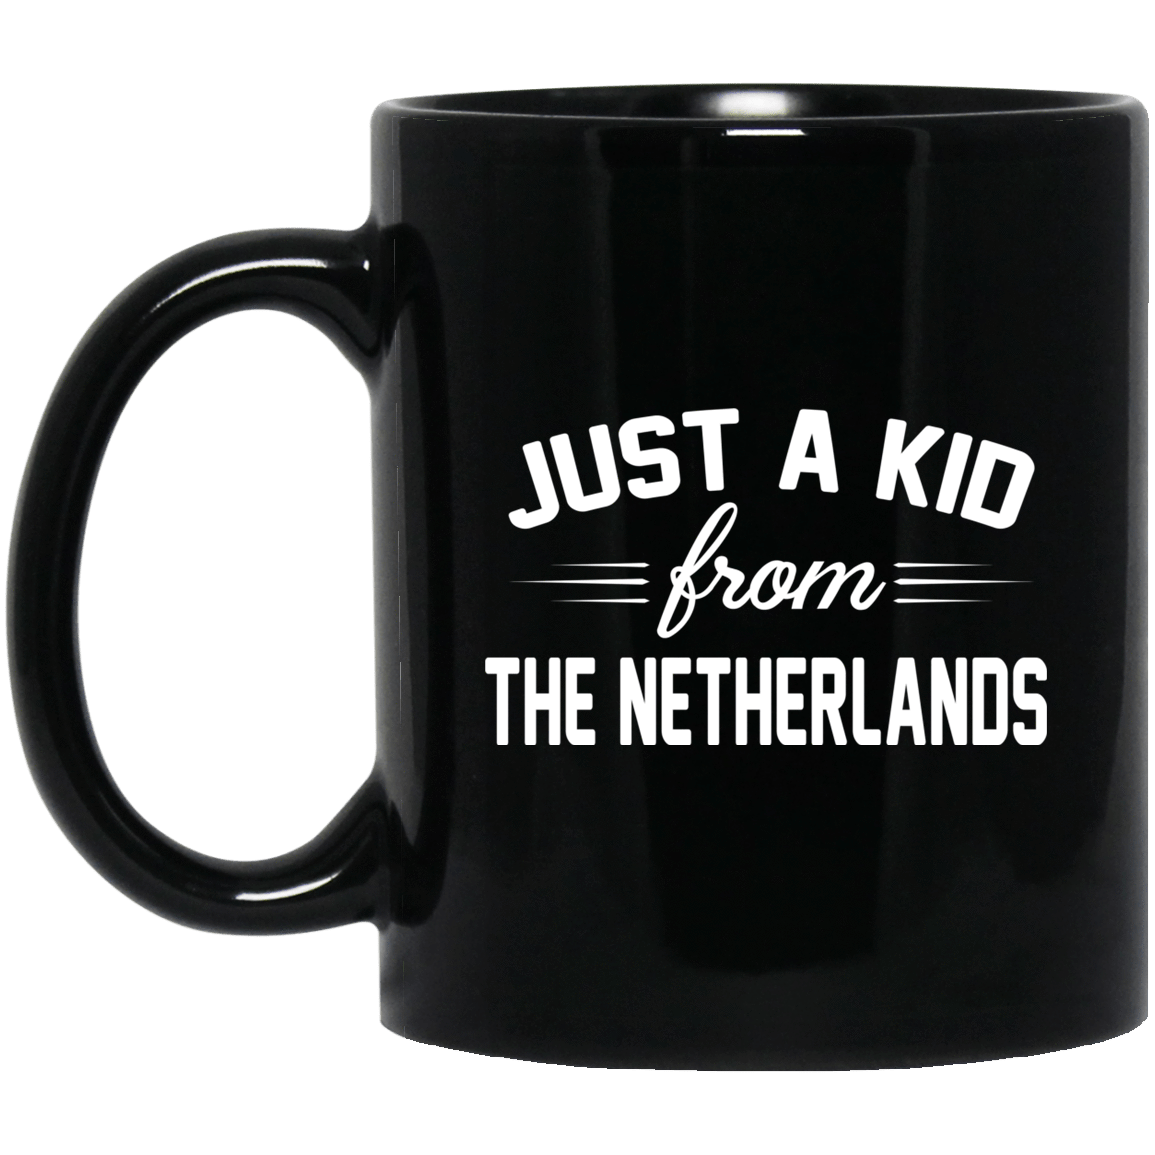 Just A Kid Store | The Netherlands Mug 1065-10181-72111093-49307 - Tee Ript